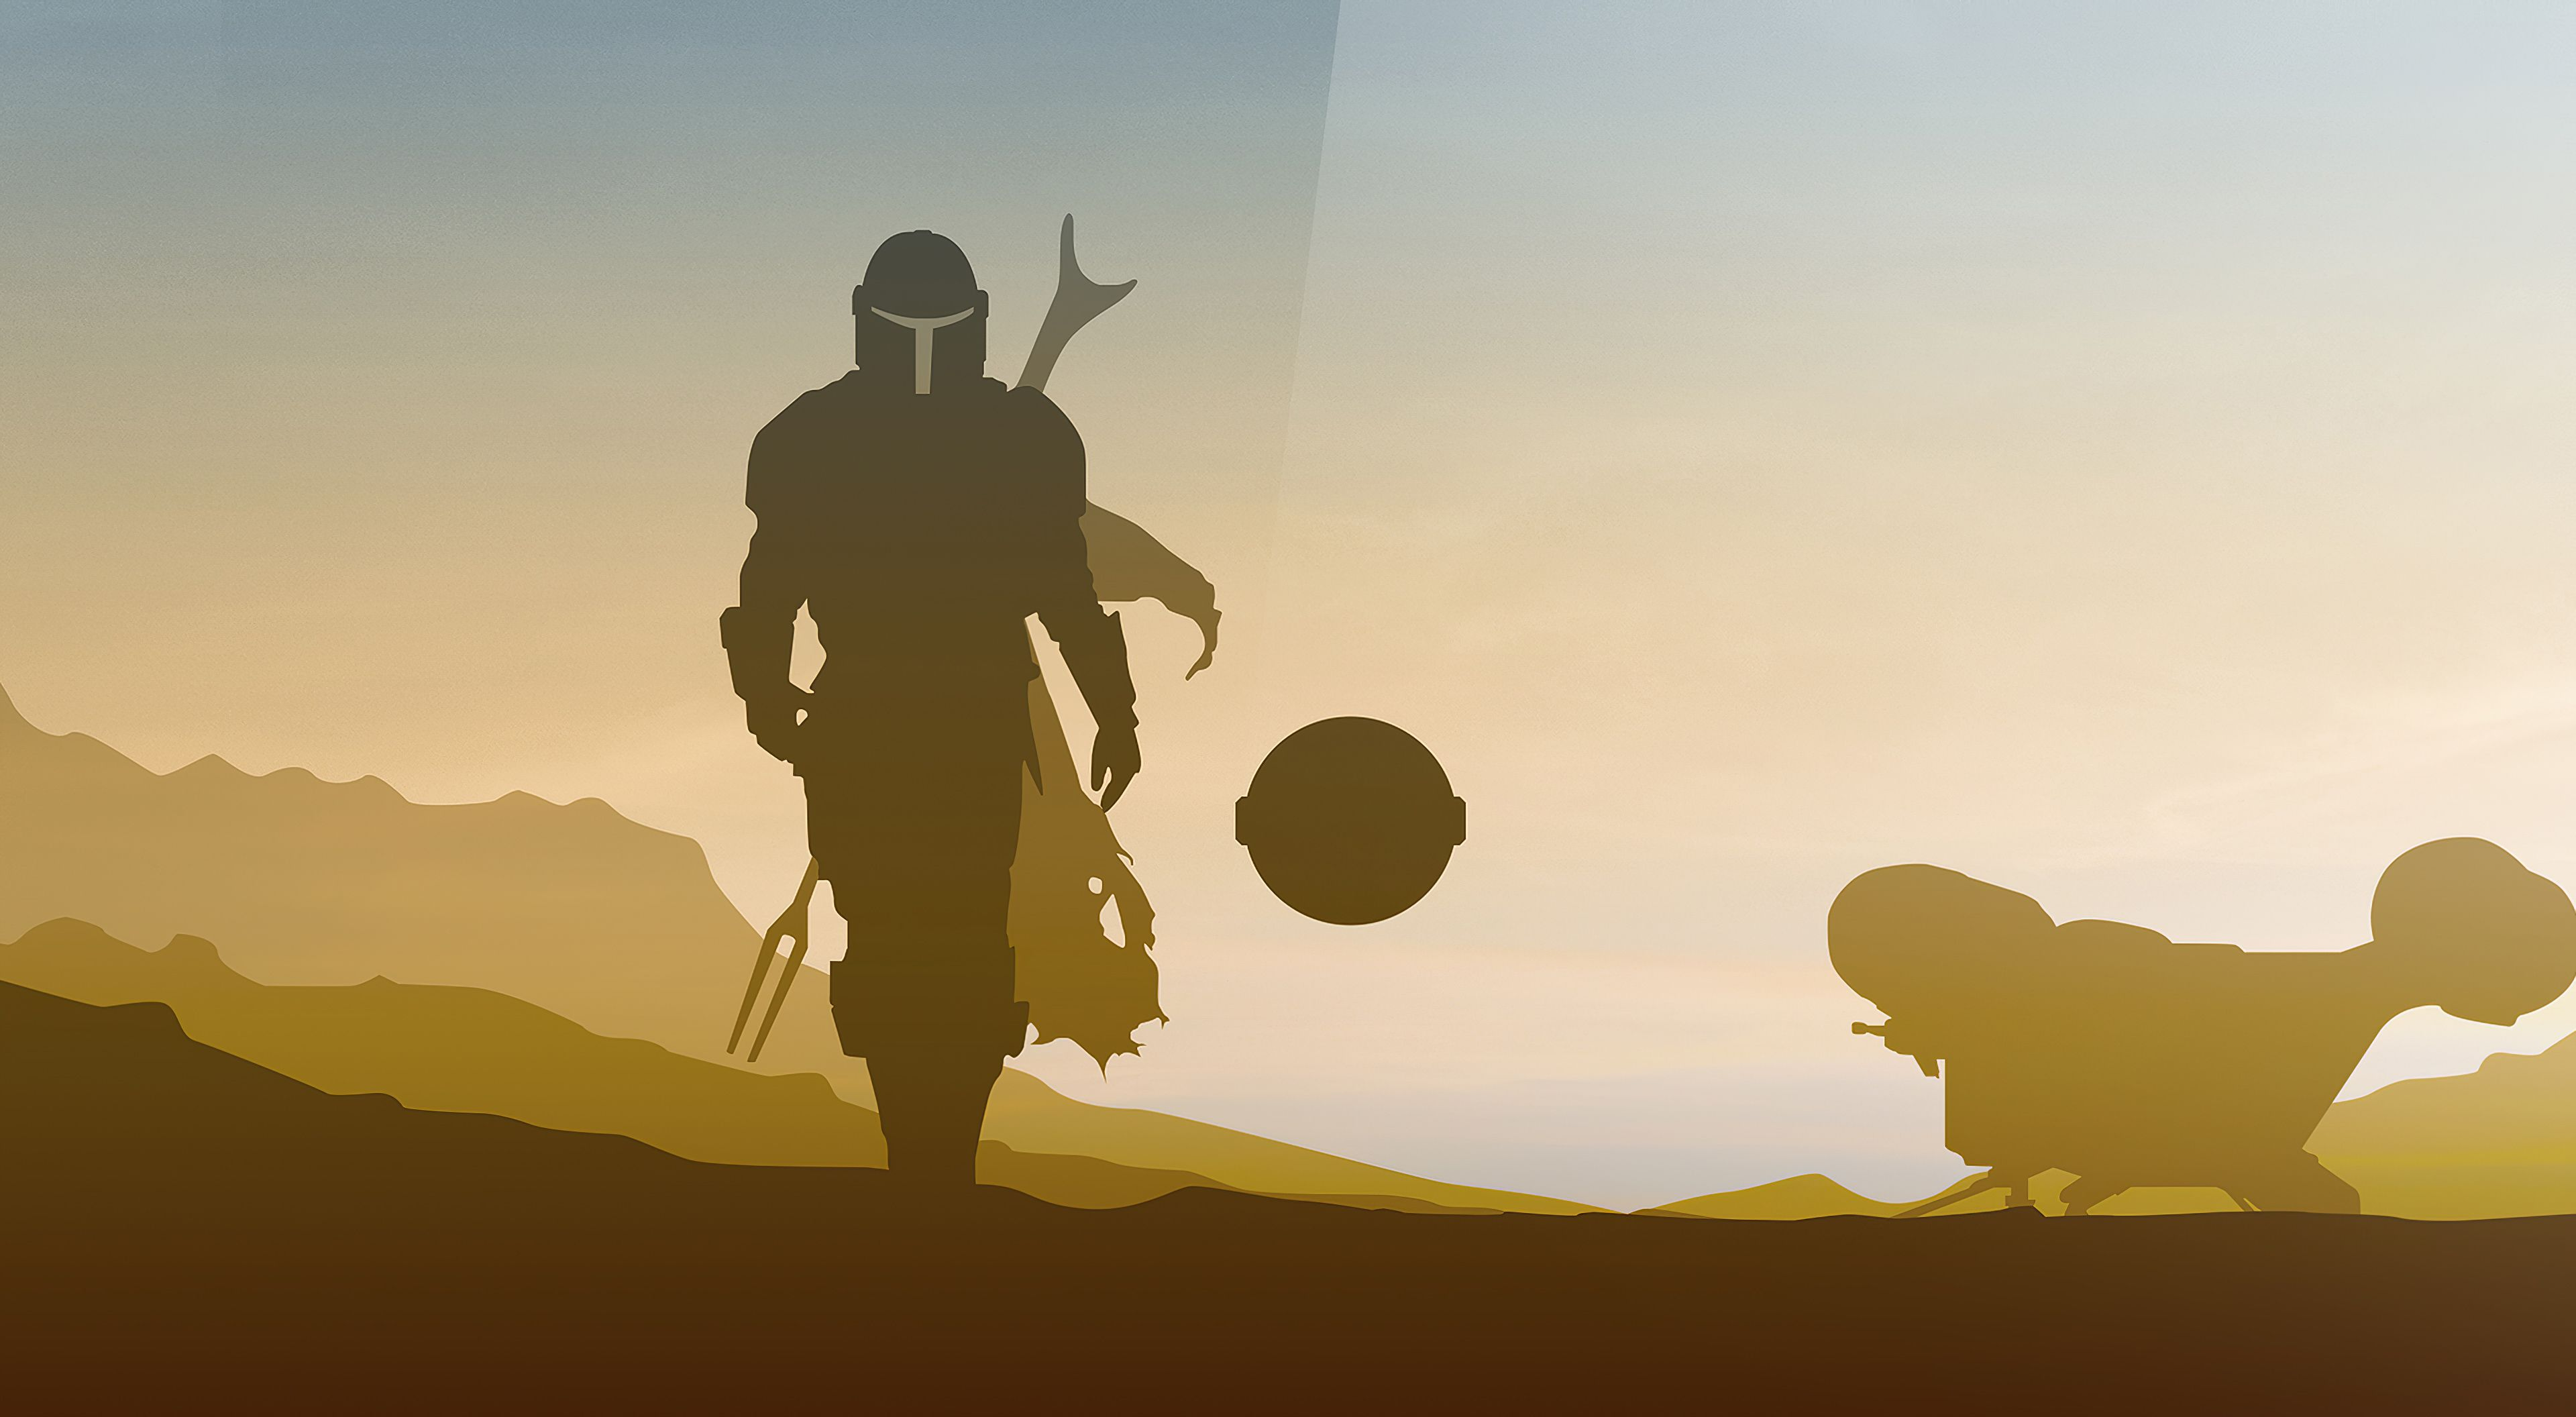 Star Wars Mandalorian Minimalist Desktop Wallpapers Wallpaper Cave